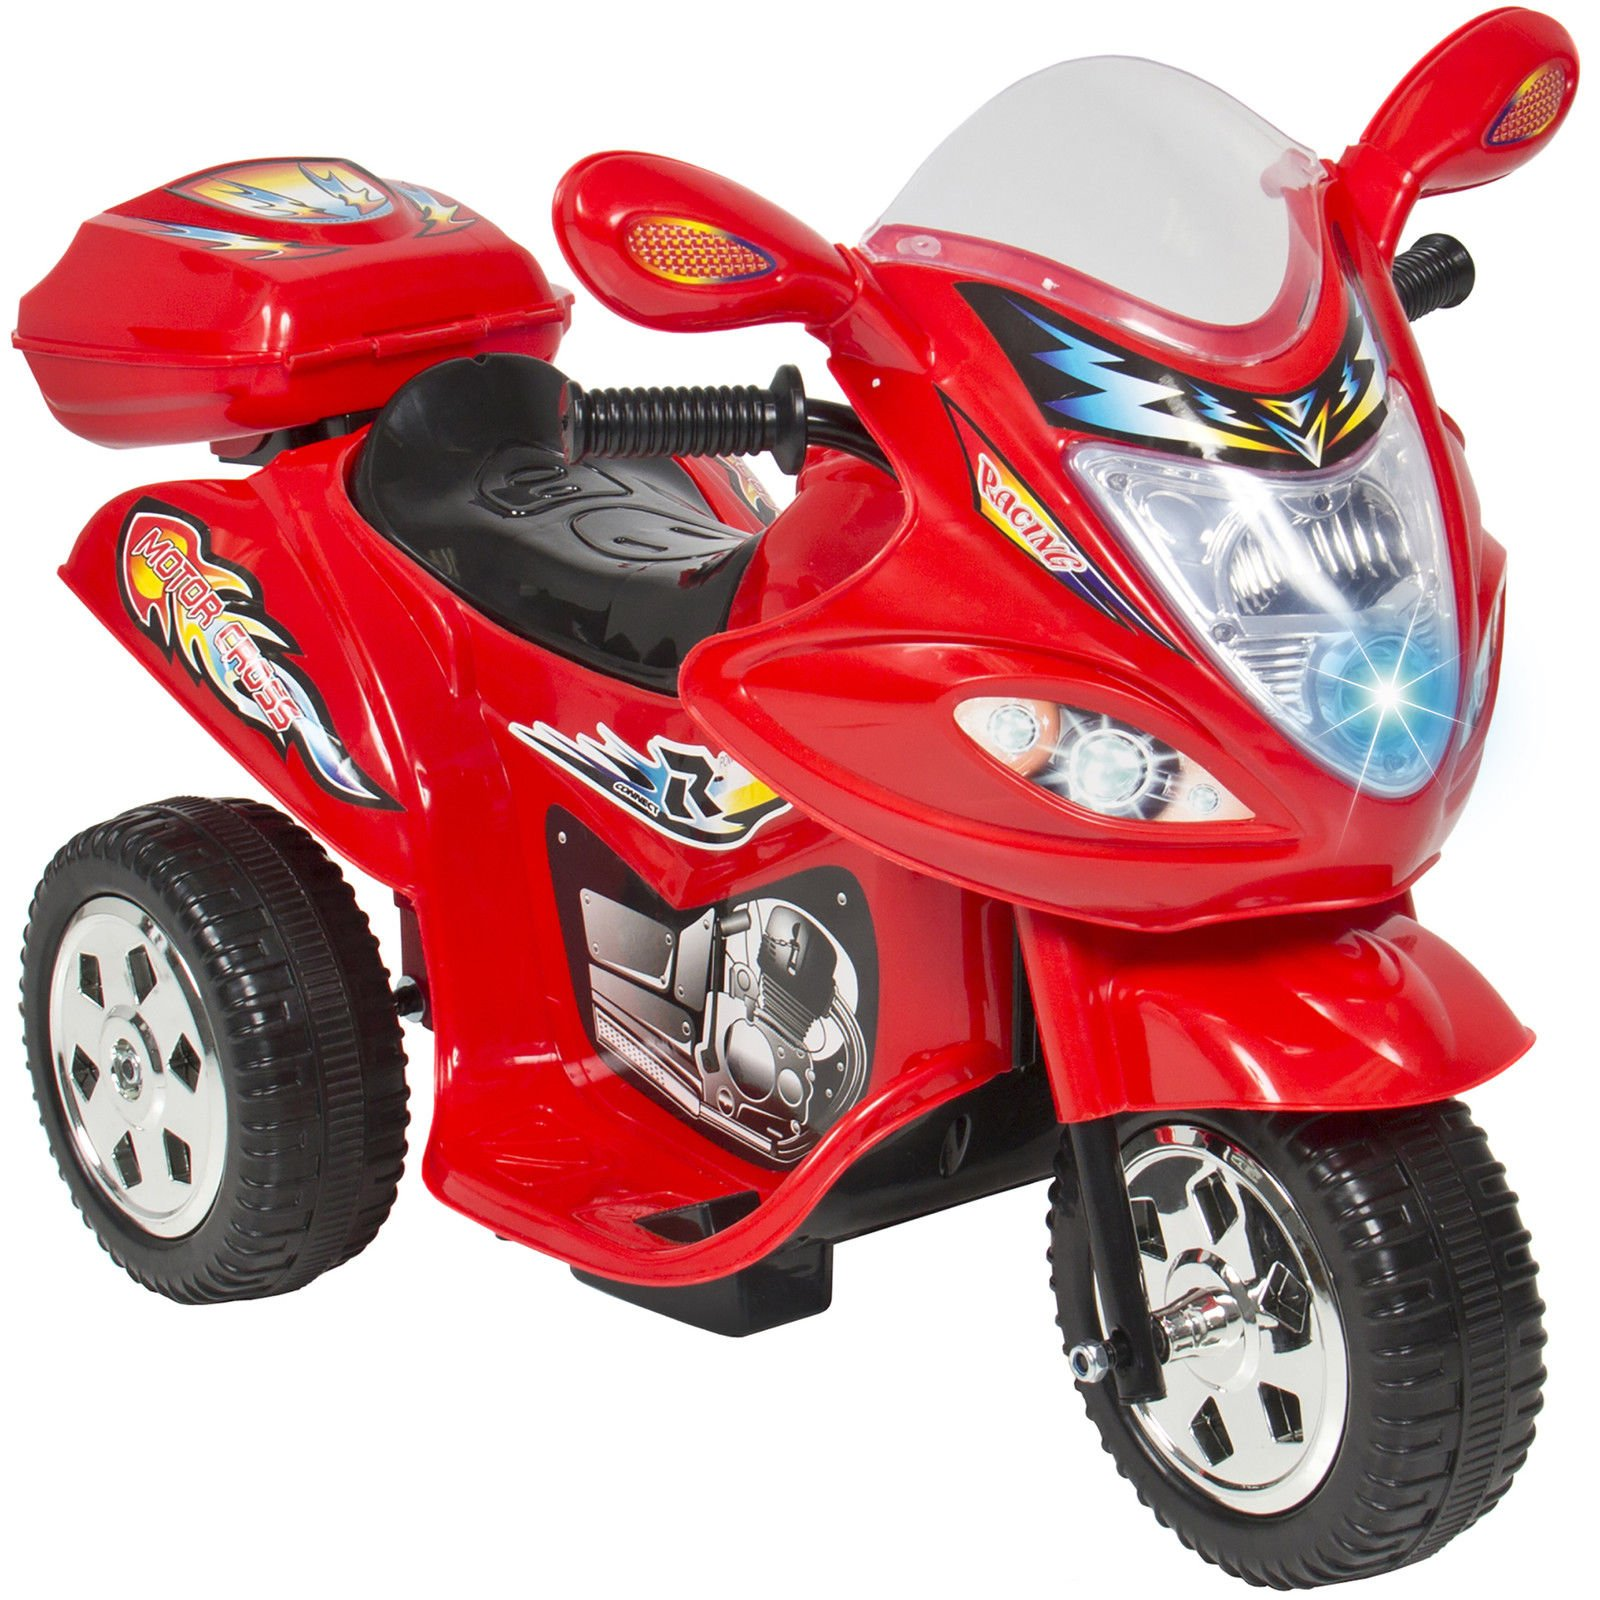 Marketworldcup-Kids Ride On Motorcycle 6V Toy Battery Powered Electric 3 Wheel Power Bicyle Red